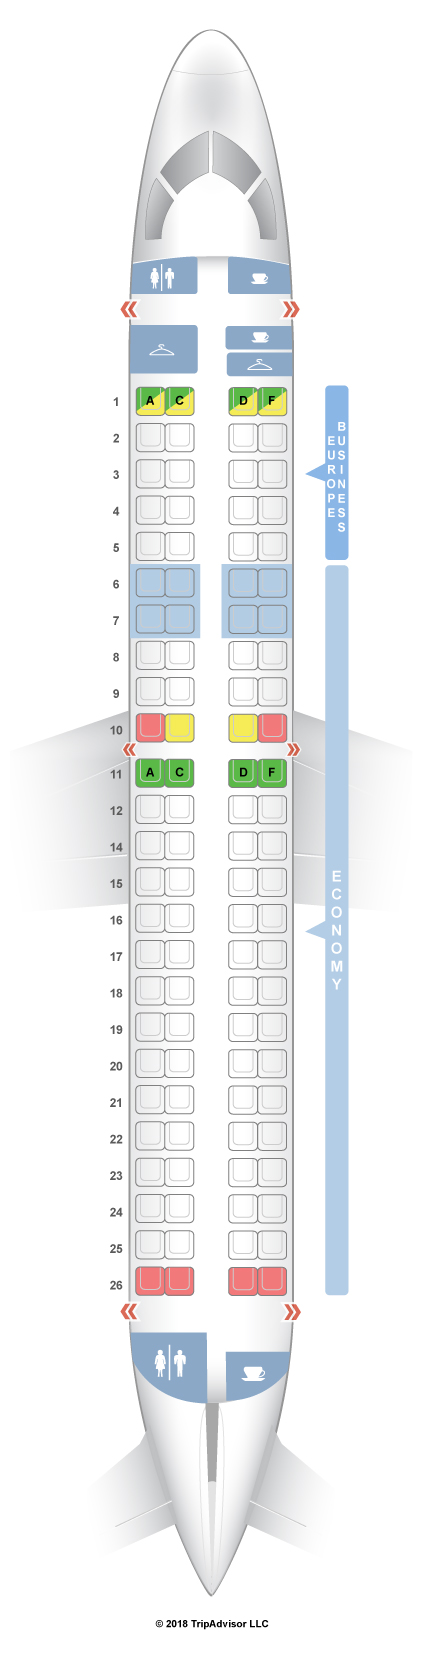 777 300er seat map with Klm Embraer Erj 190 on Klm World Business Class Gids further Best Cathay Pacific Award Space besides Air New Zealand Confirms No Business Class For A321neo Jets furthermore A321 200 also Security Researcher Banned United Flight Tweeted Systems Hacked.